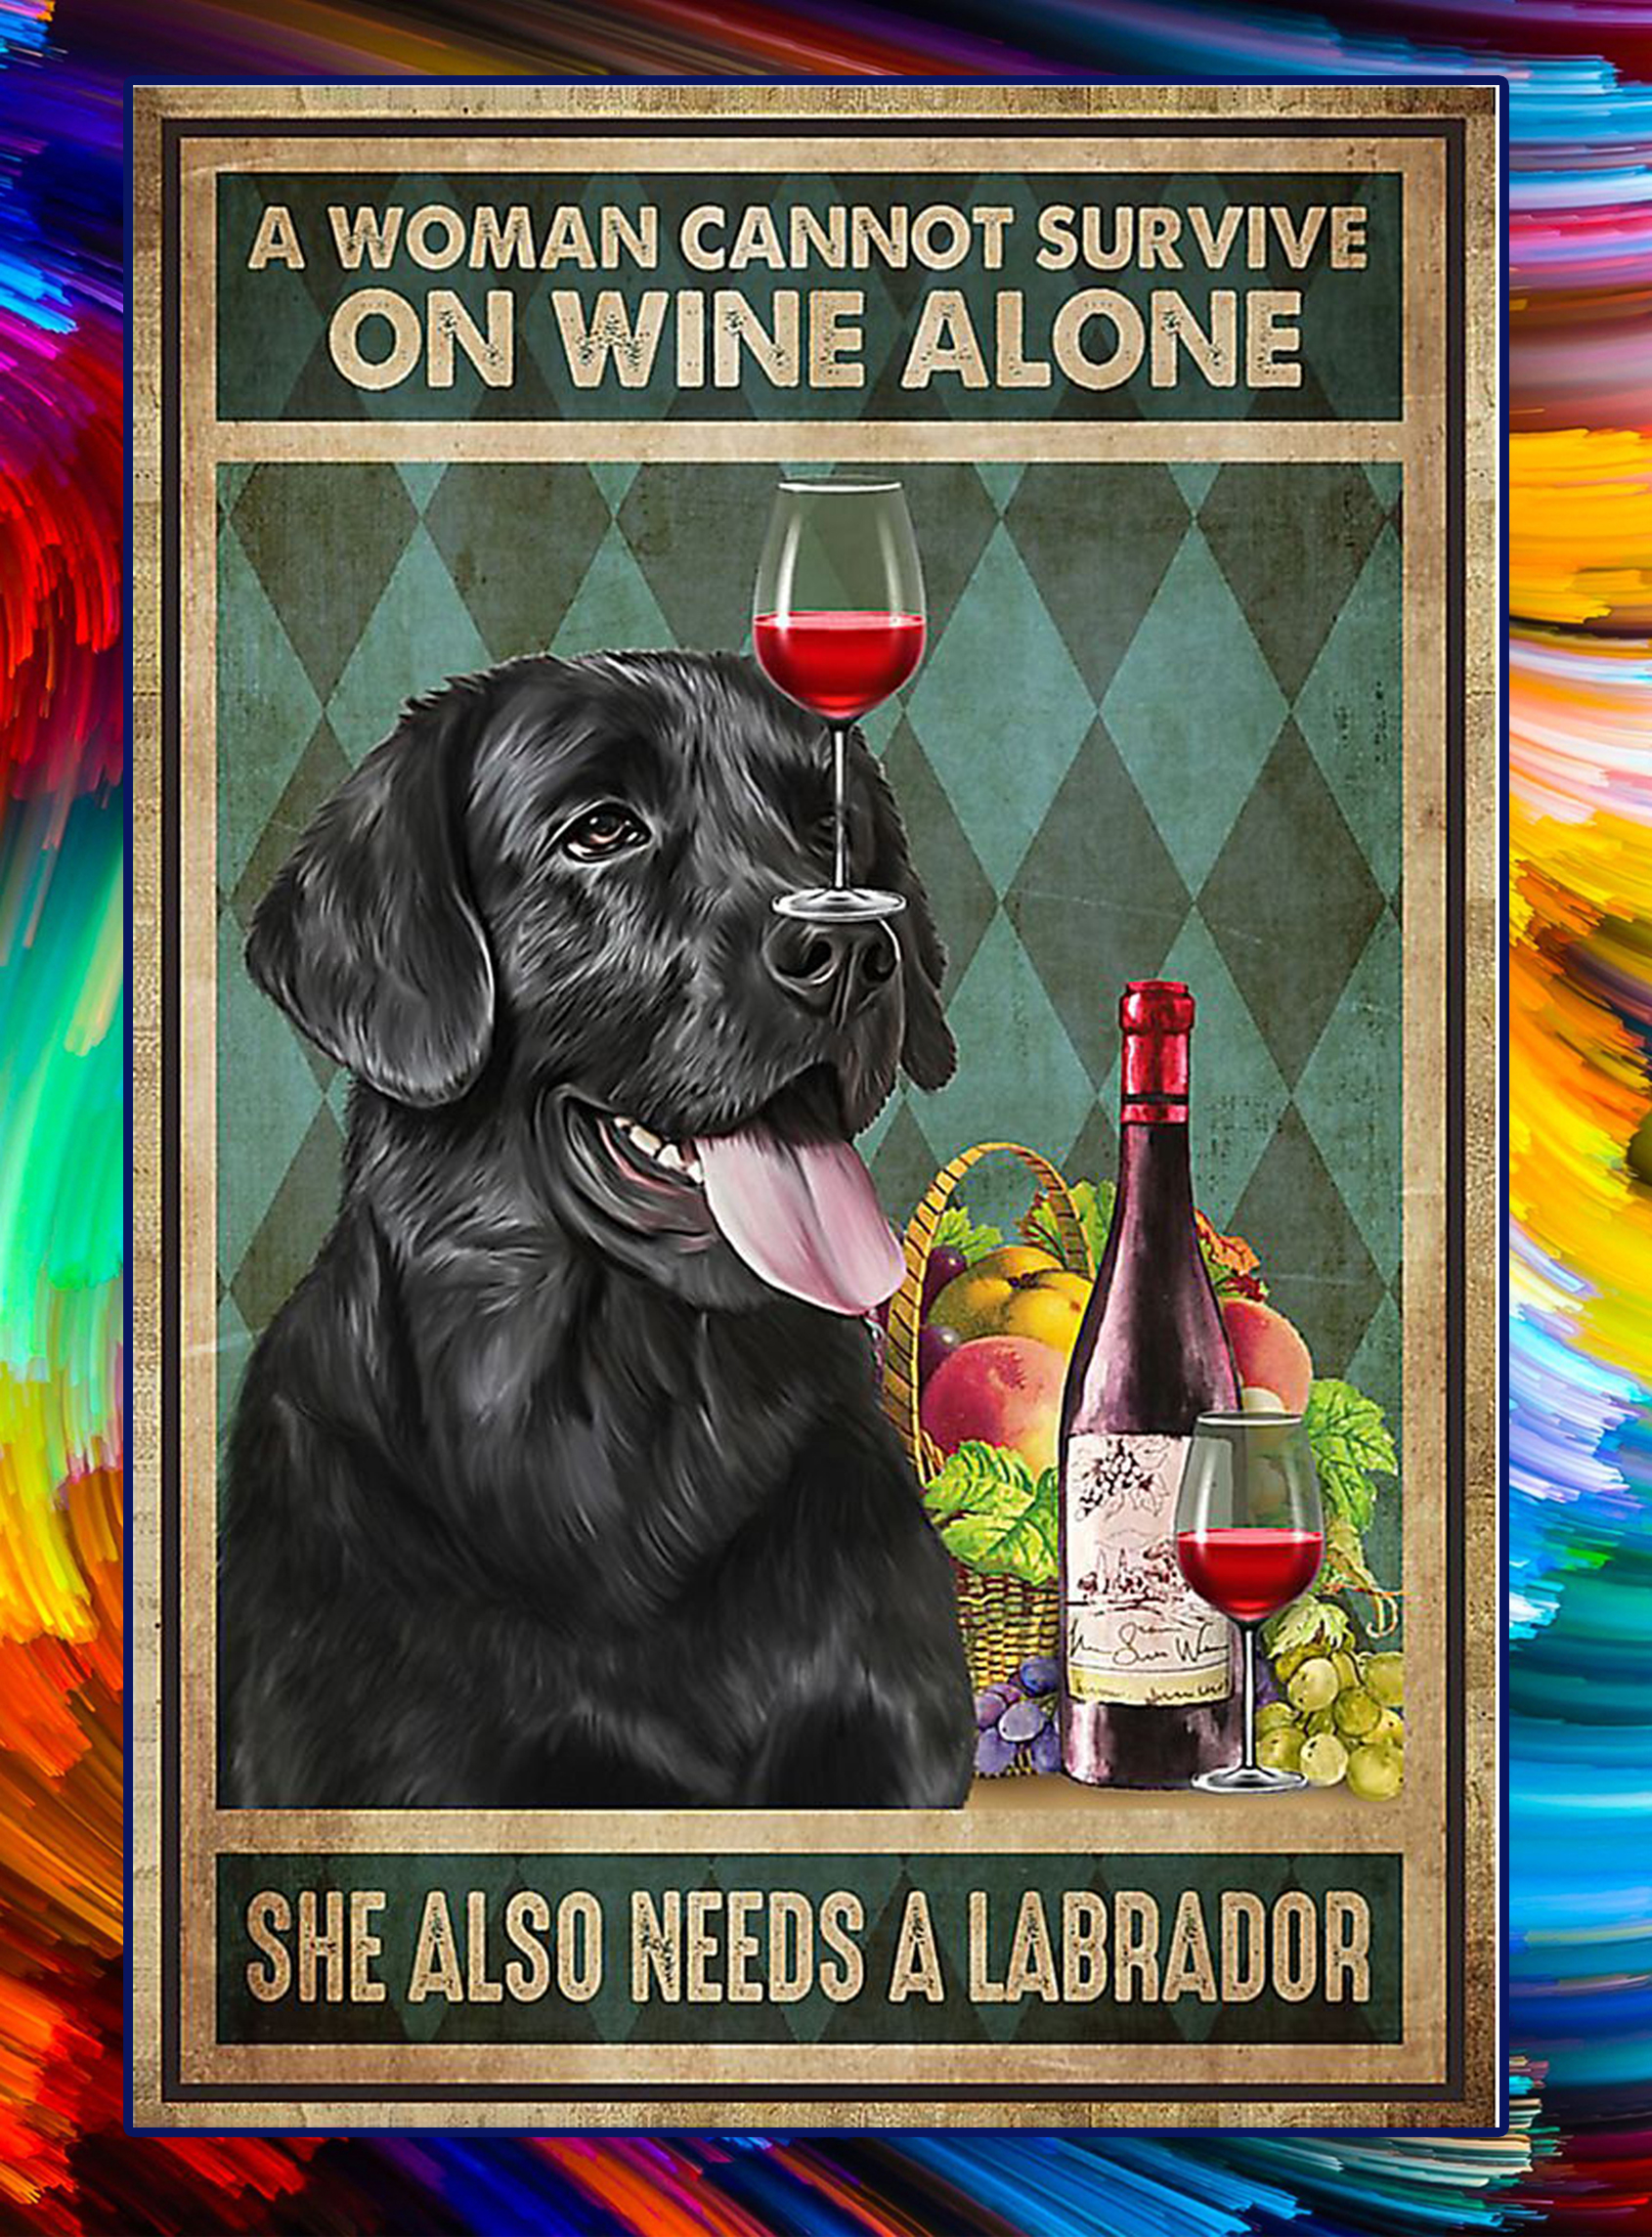 A woman cannot survive on wine alone she also needs a labrador poster - A4